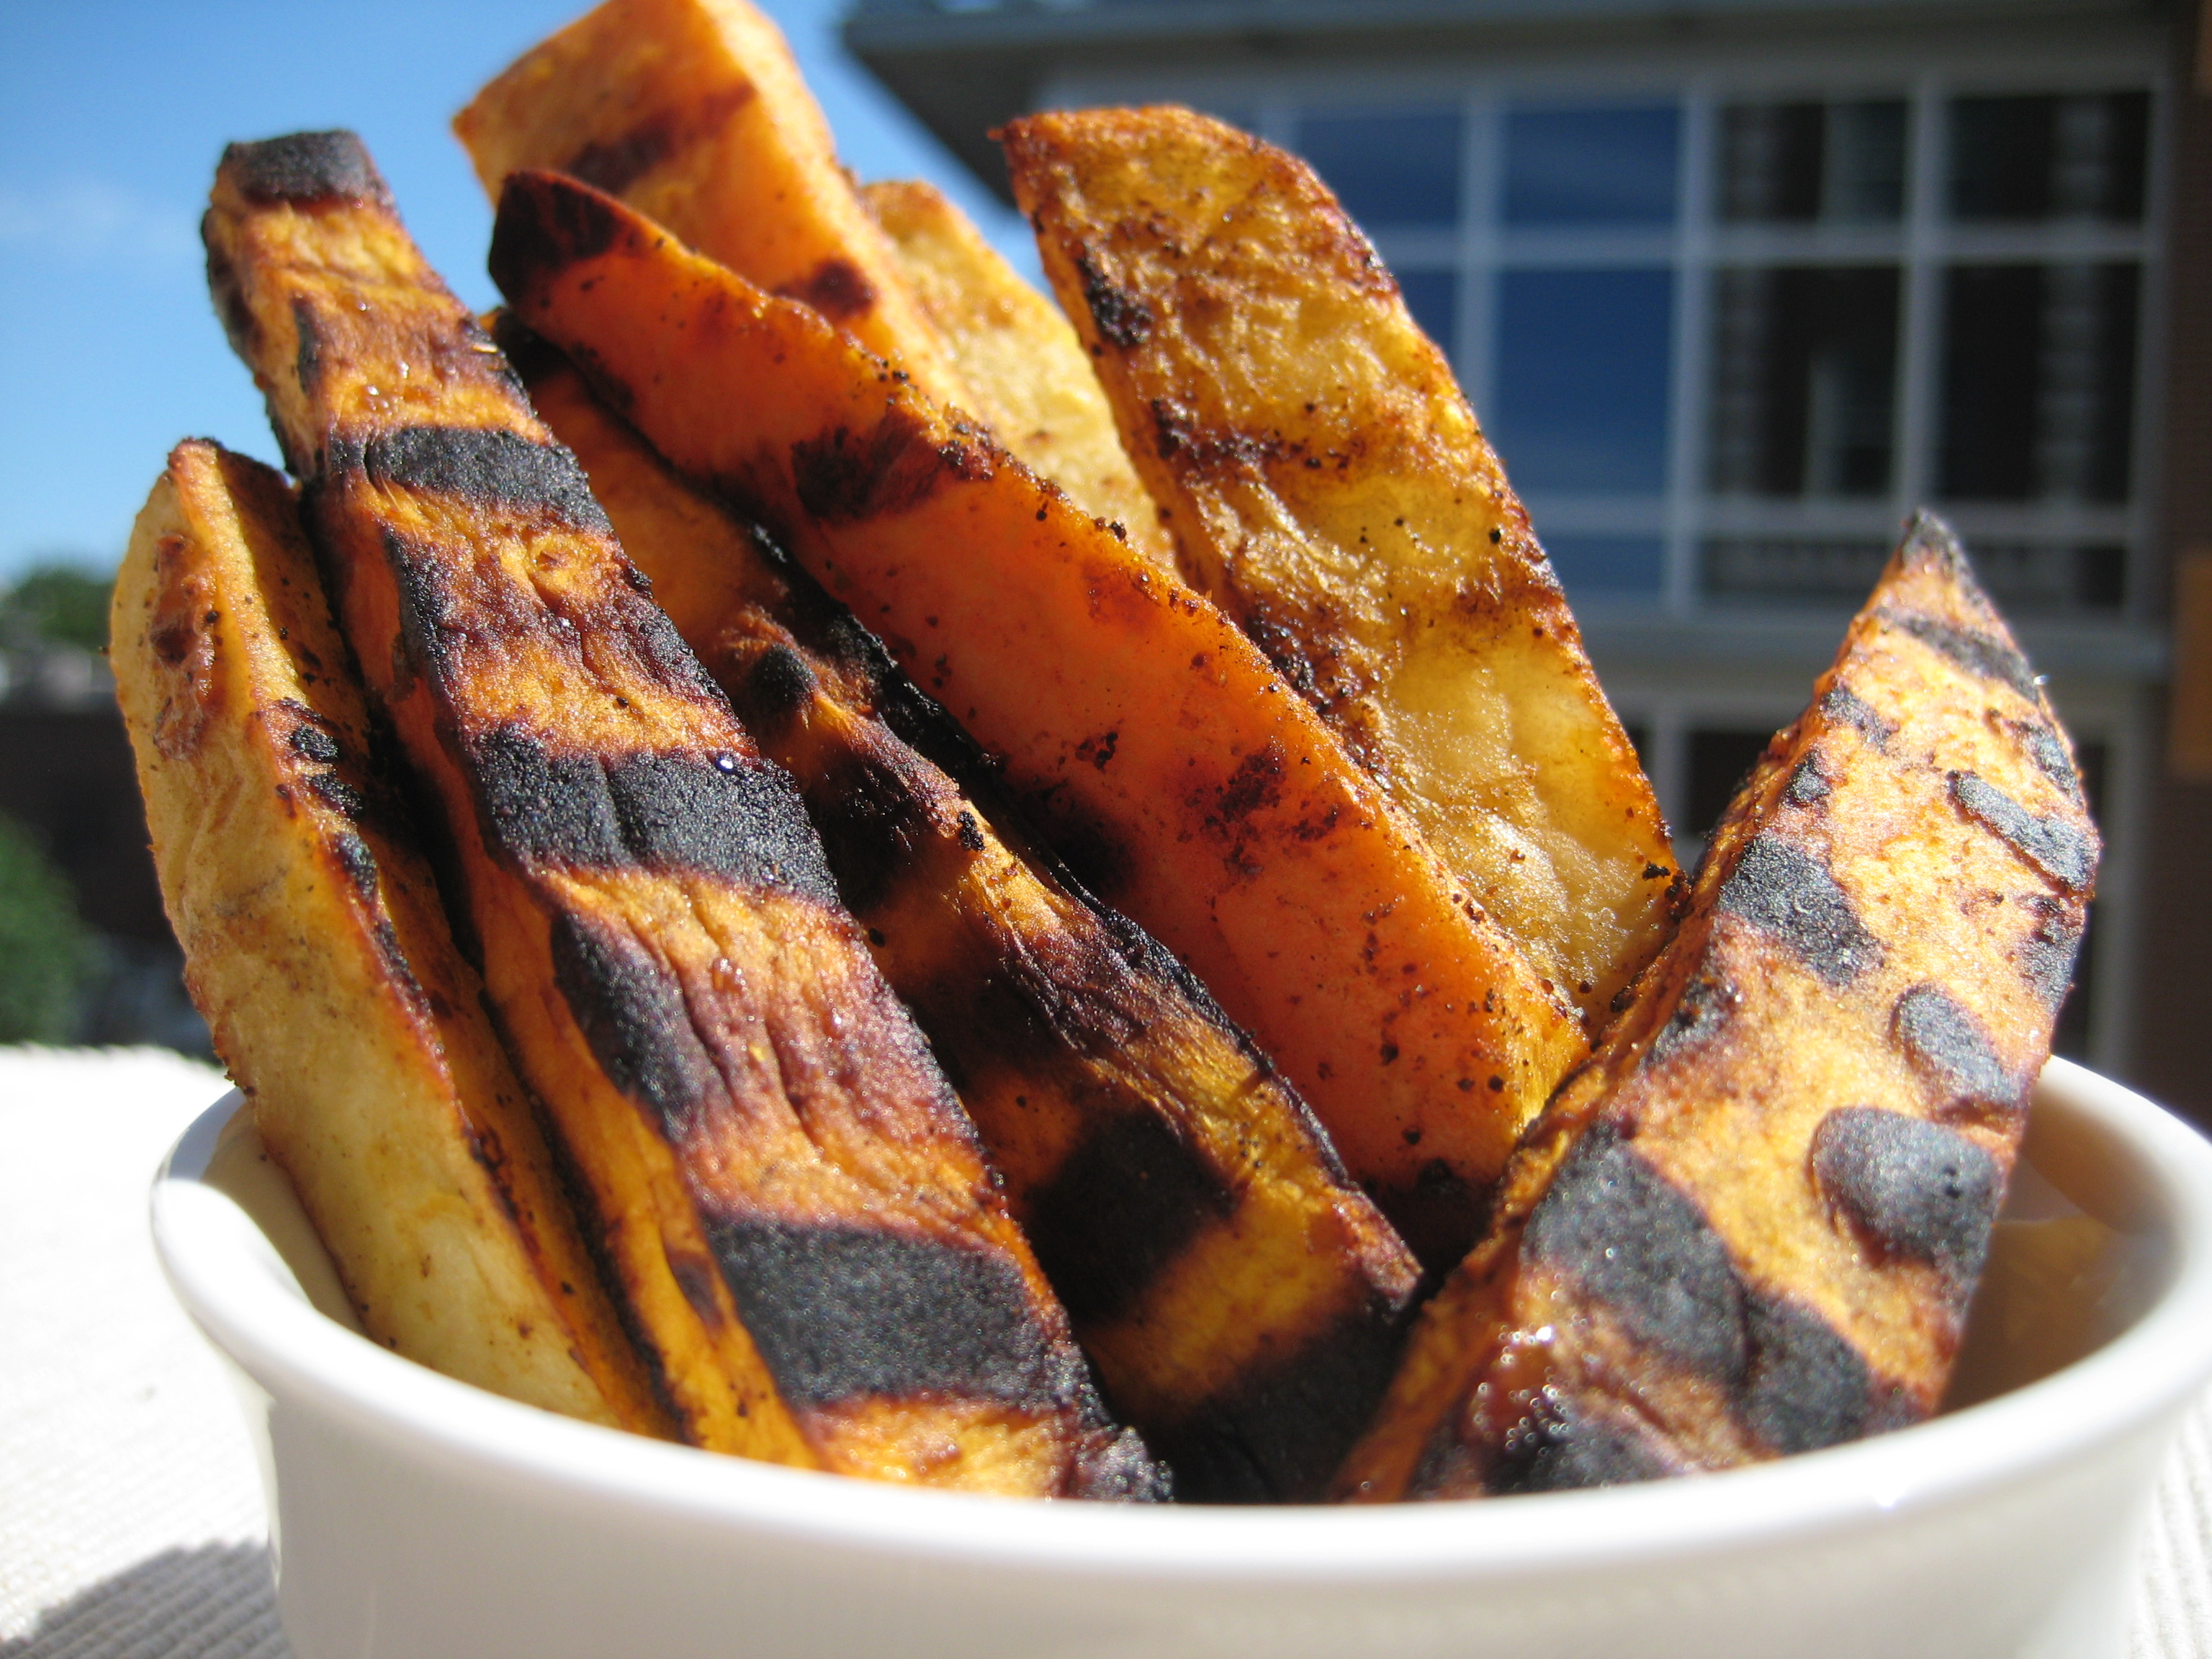 Grilled Sweet Potato and White Potato Fries